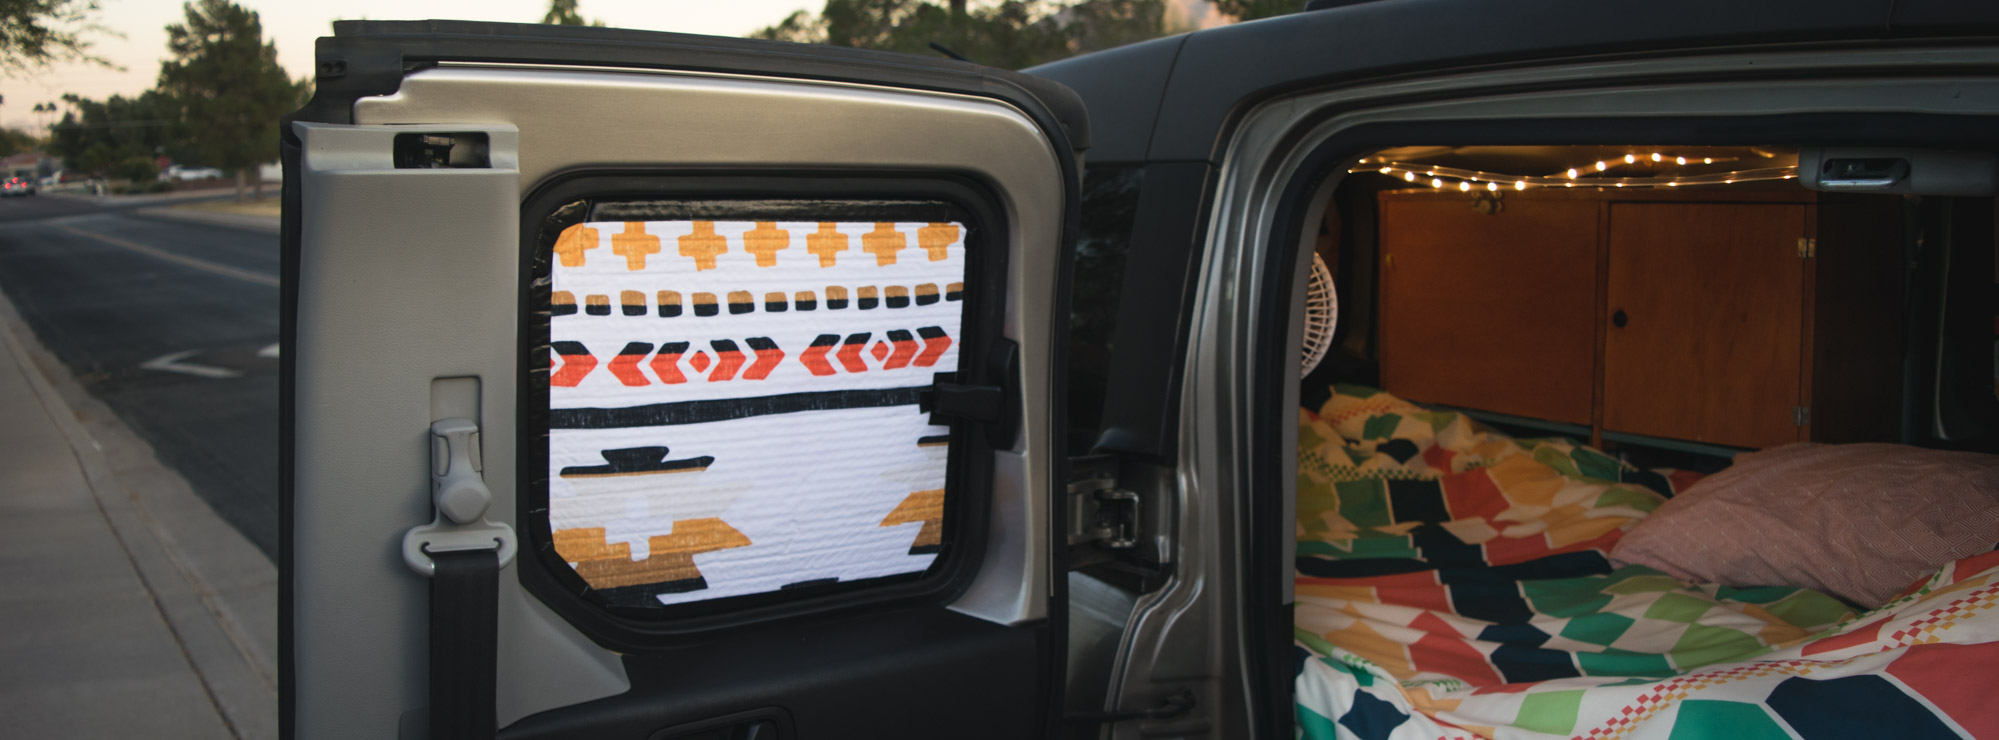 How to Make Beautiful Blackout Window Shades for a Camper